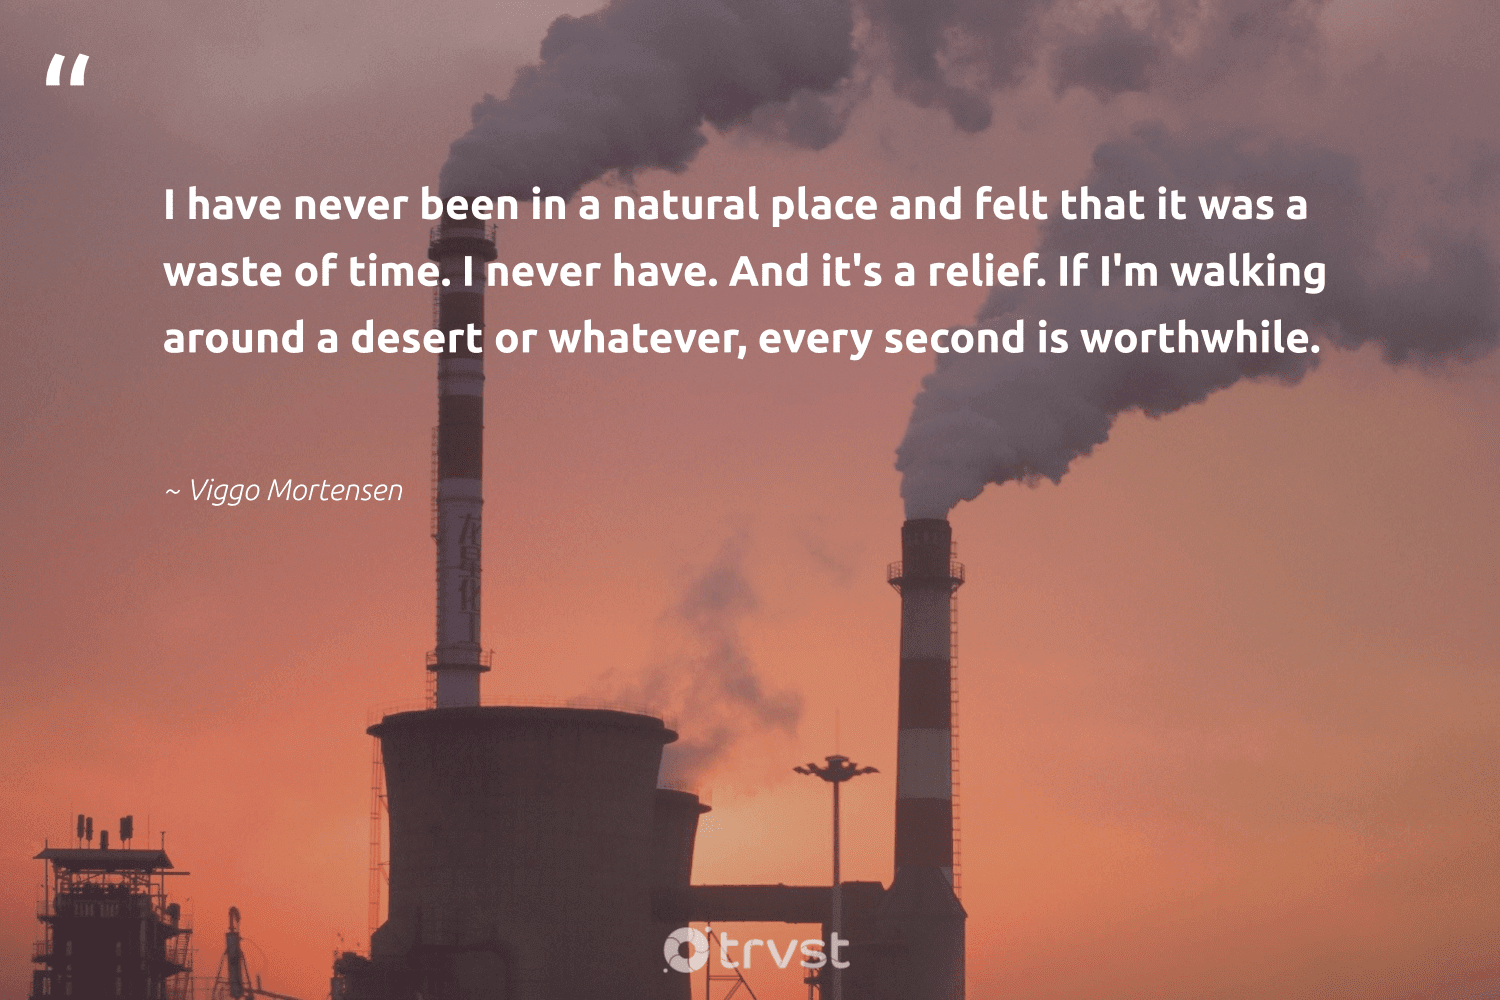 """""""I have never been in a natural place and felt that it was a waste of time. I never have. And it's a relief. If I'm walking around a desert or whatever, every second is worthwhile.""""  - Viggo Mortensen #trvst #quotes #waste #natural #sustainableliving #takeaction #wildernessnation #dogood #sustainability #beinspired #ecofriendly #collectiveaction"""